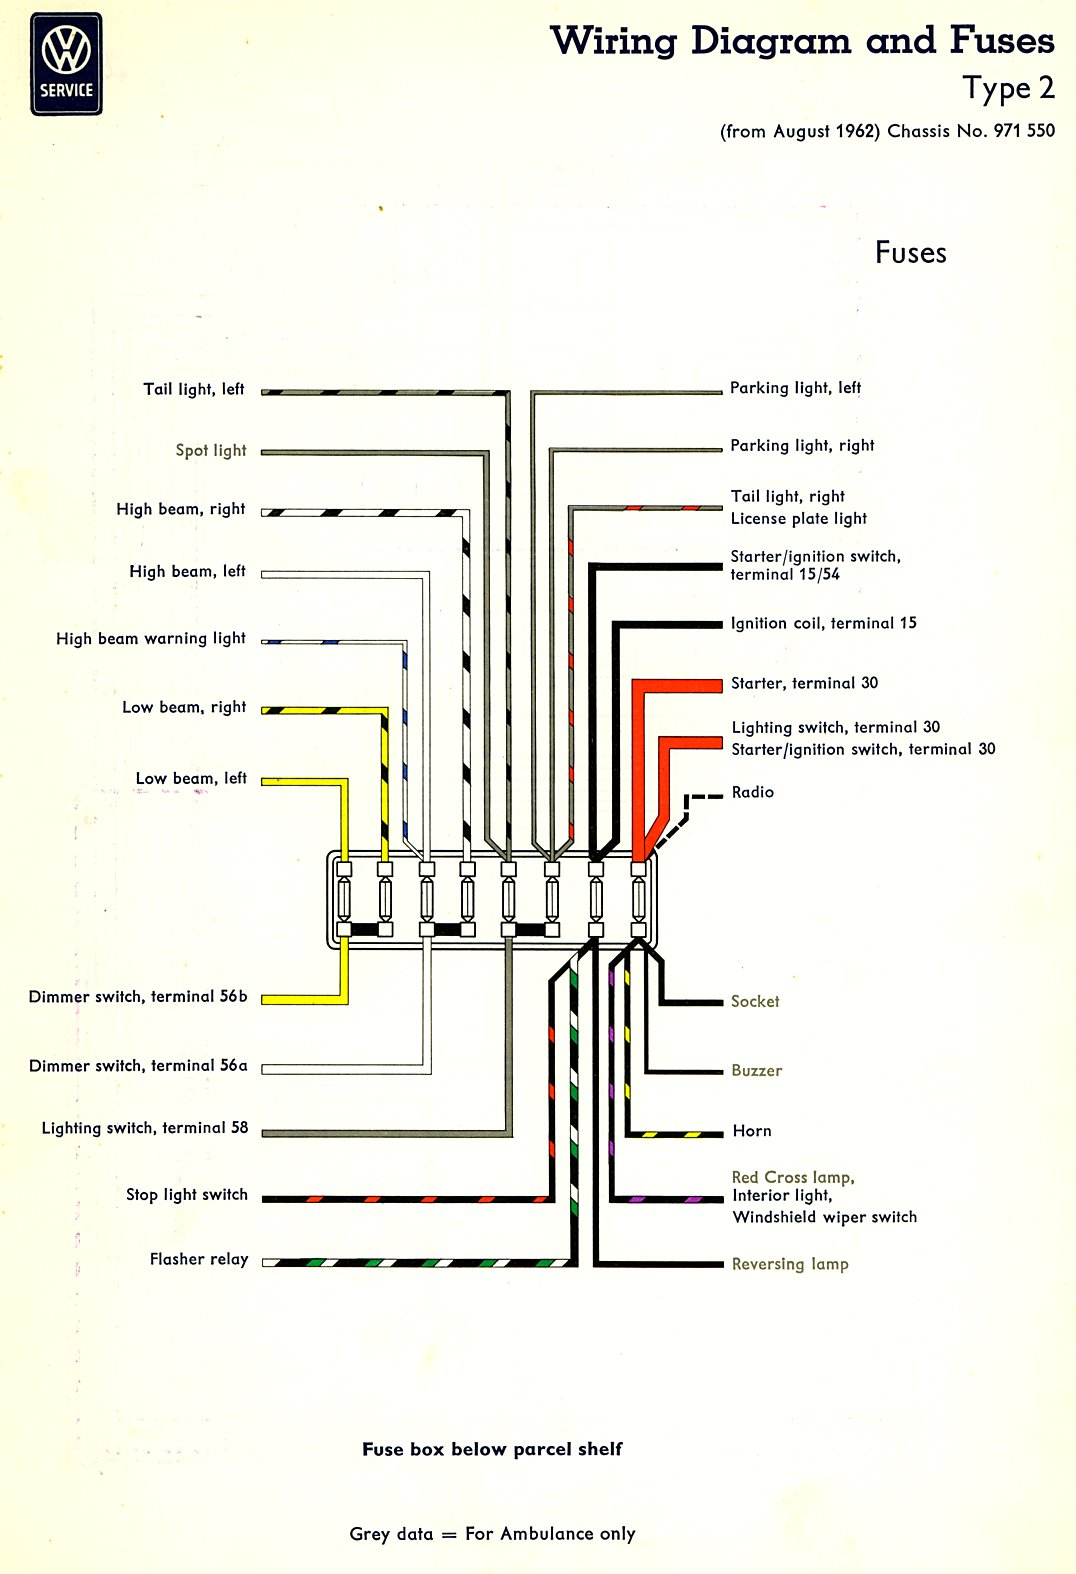 bus_63_fuses thesamba com type 2 wiring diagrams 1978 vw bus fuse box diagram at bakdesigns.co